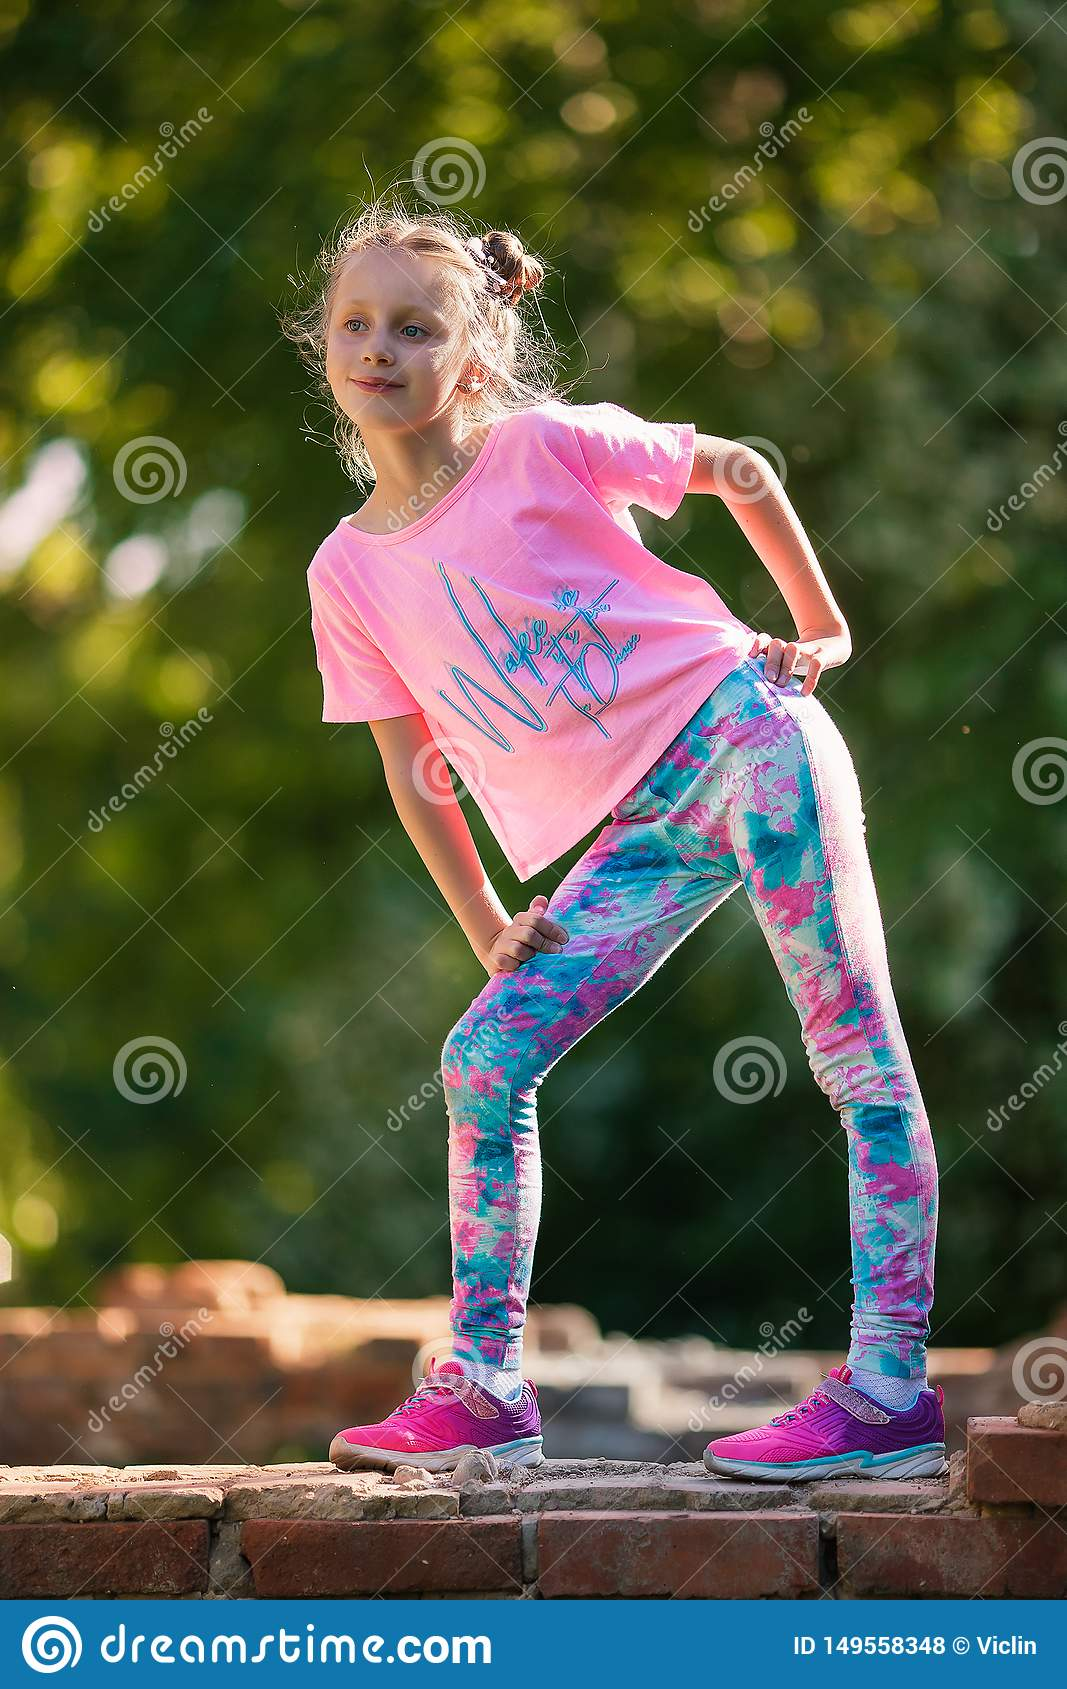 Happy small child jumping active for pleasure. Active and energetic girl having fun in summer. The concept of sports, dance, hip